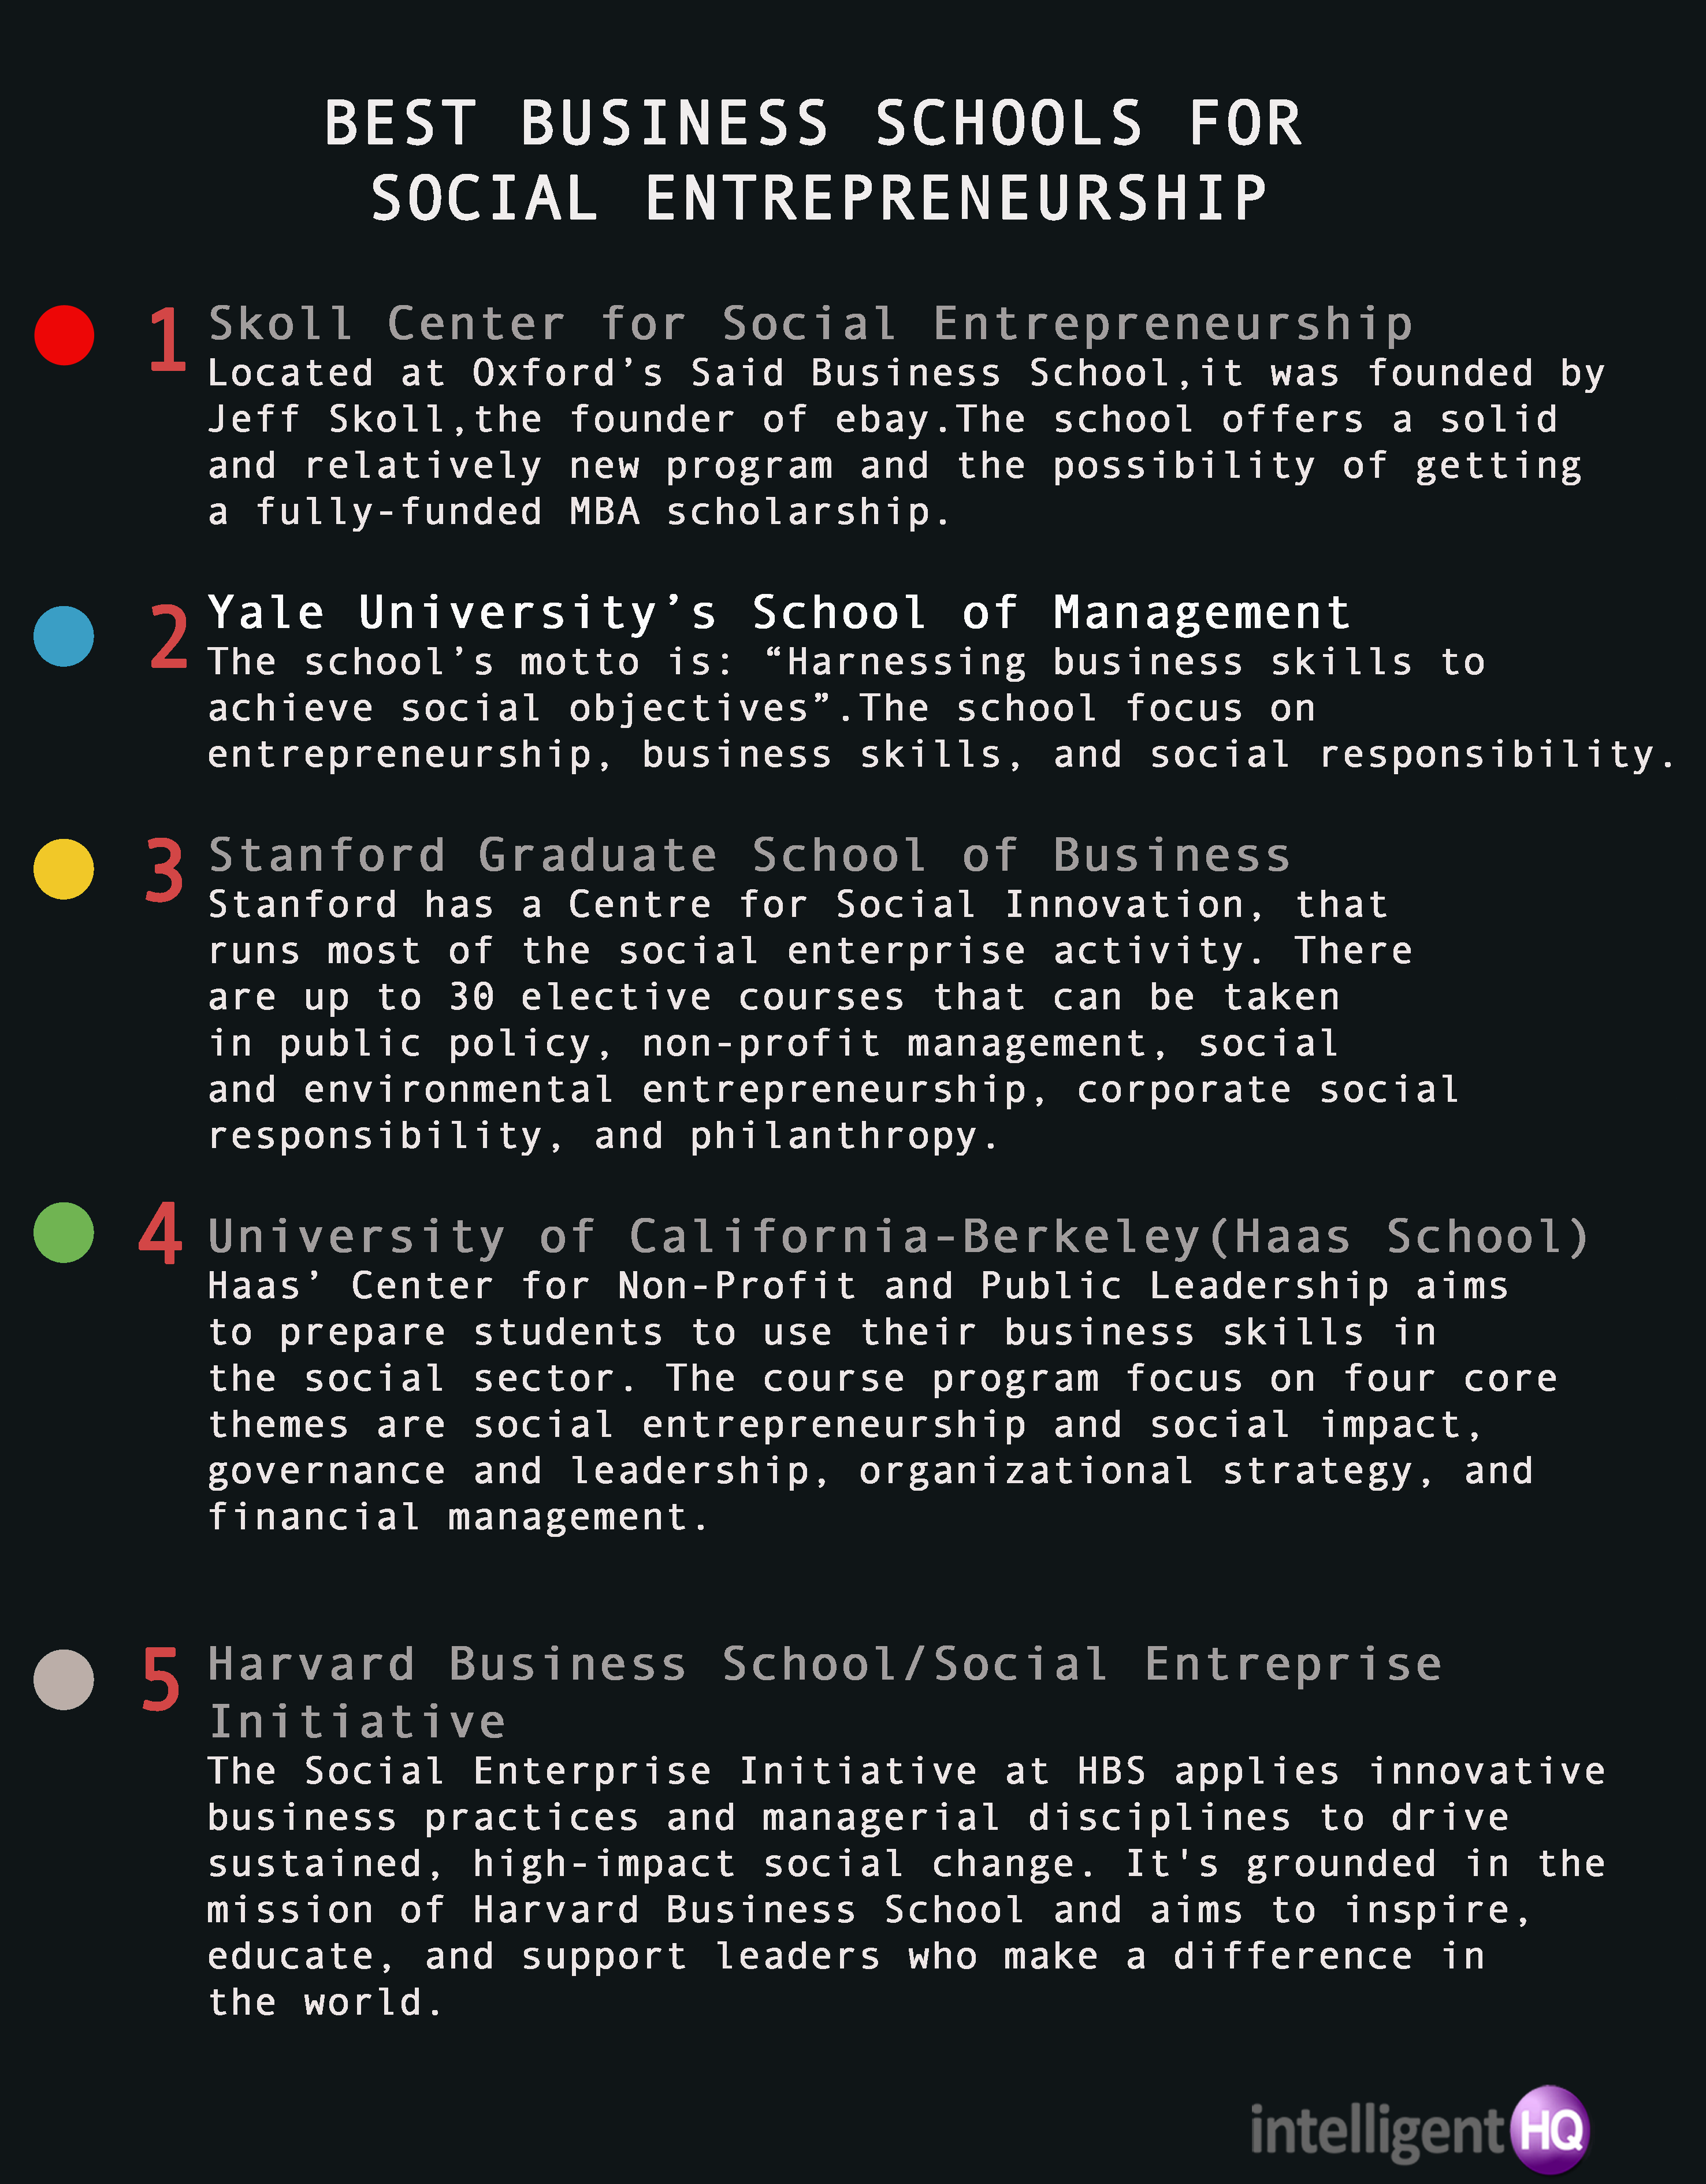 Best Business Schools For Social Entrepreneurship Infographic by Maria Fonseca for Intelligenthq